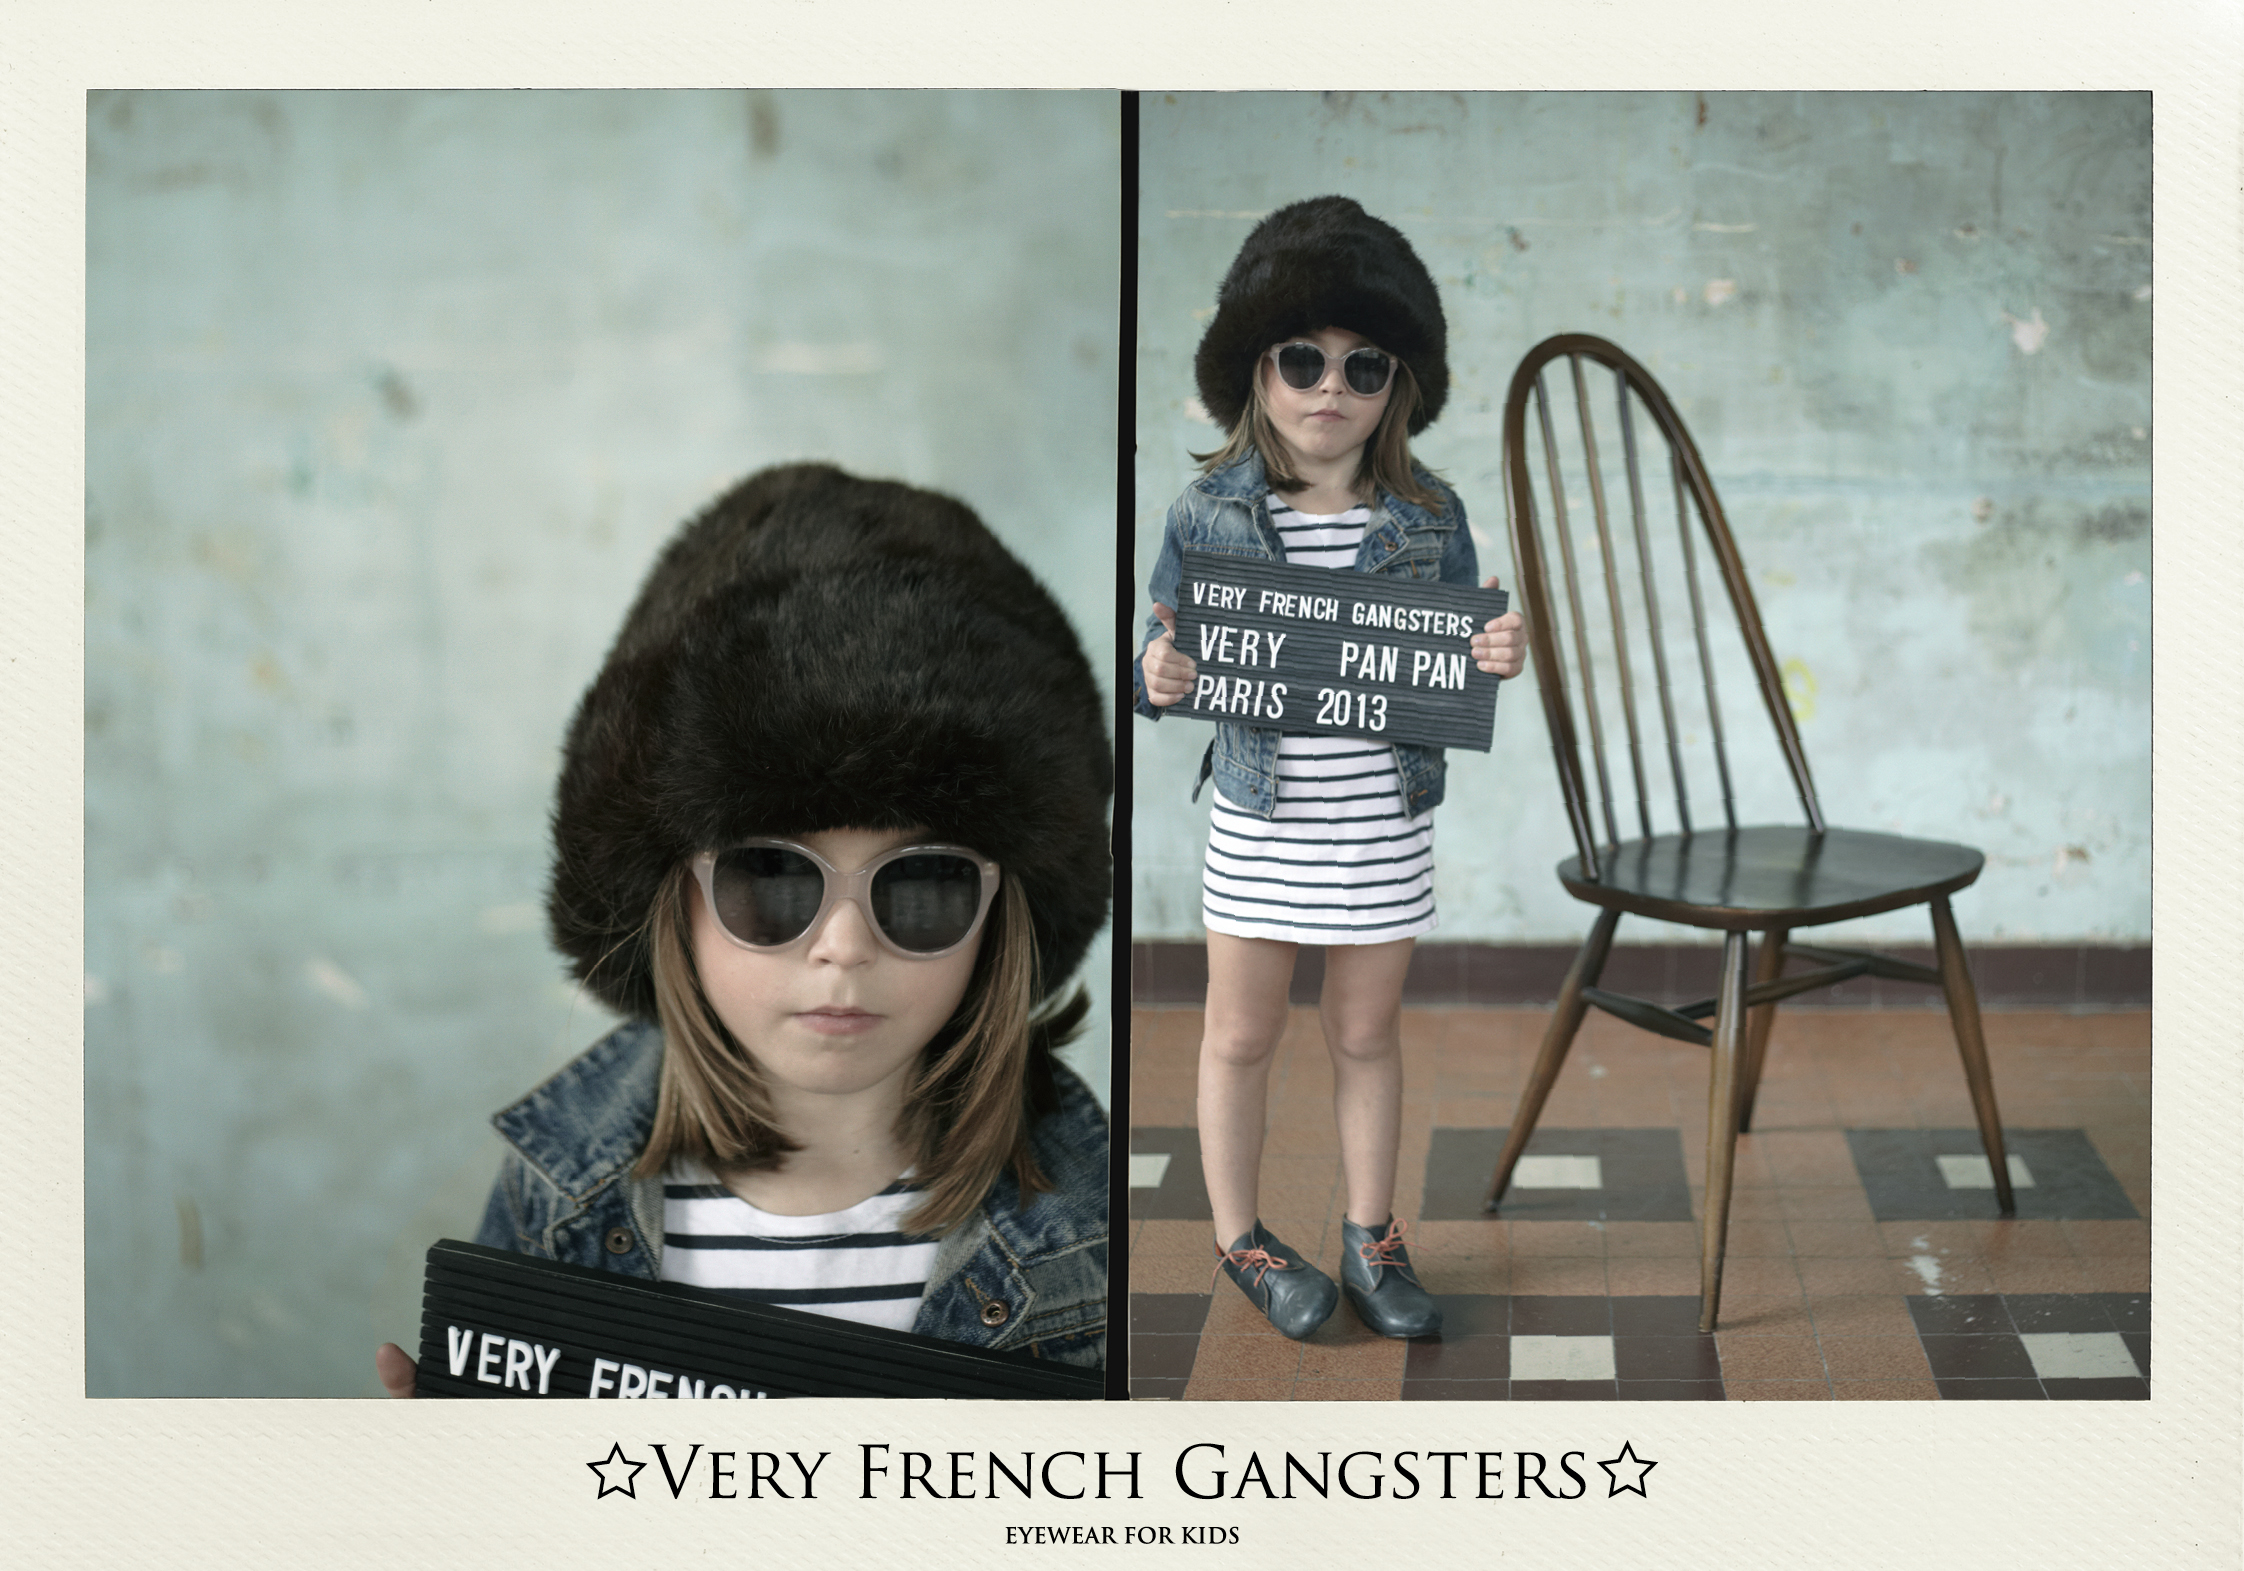 - Very French Gangster -